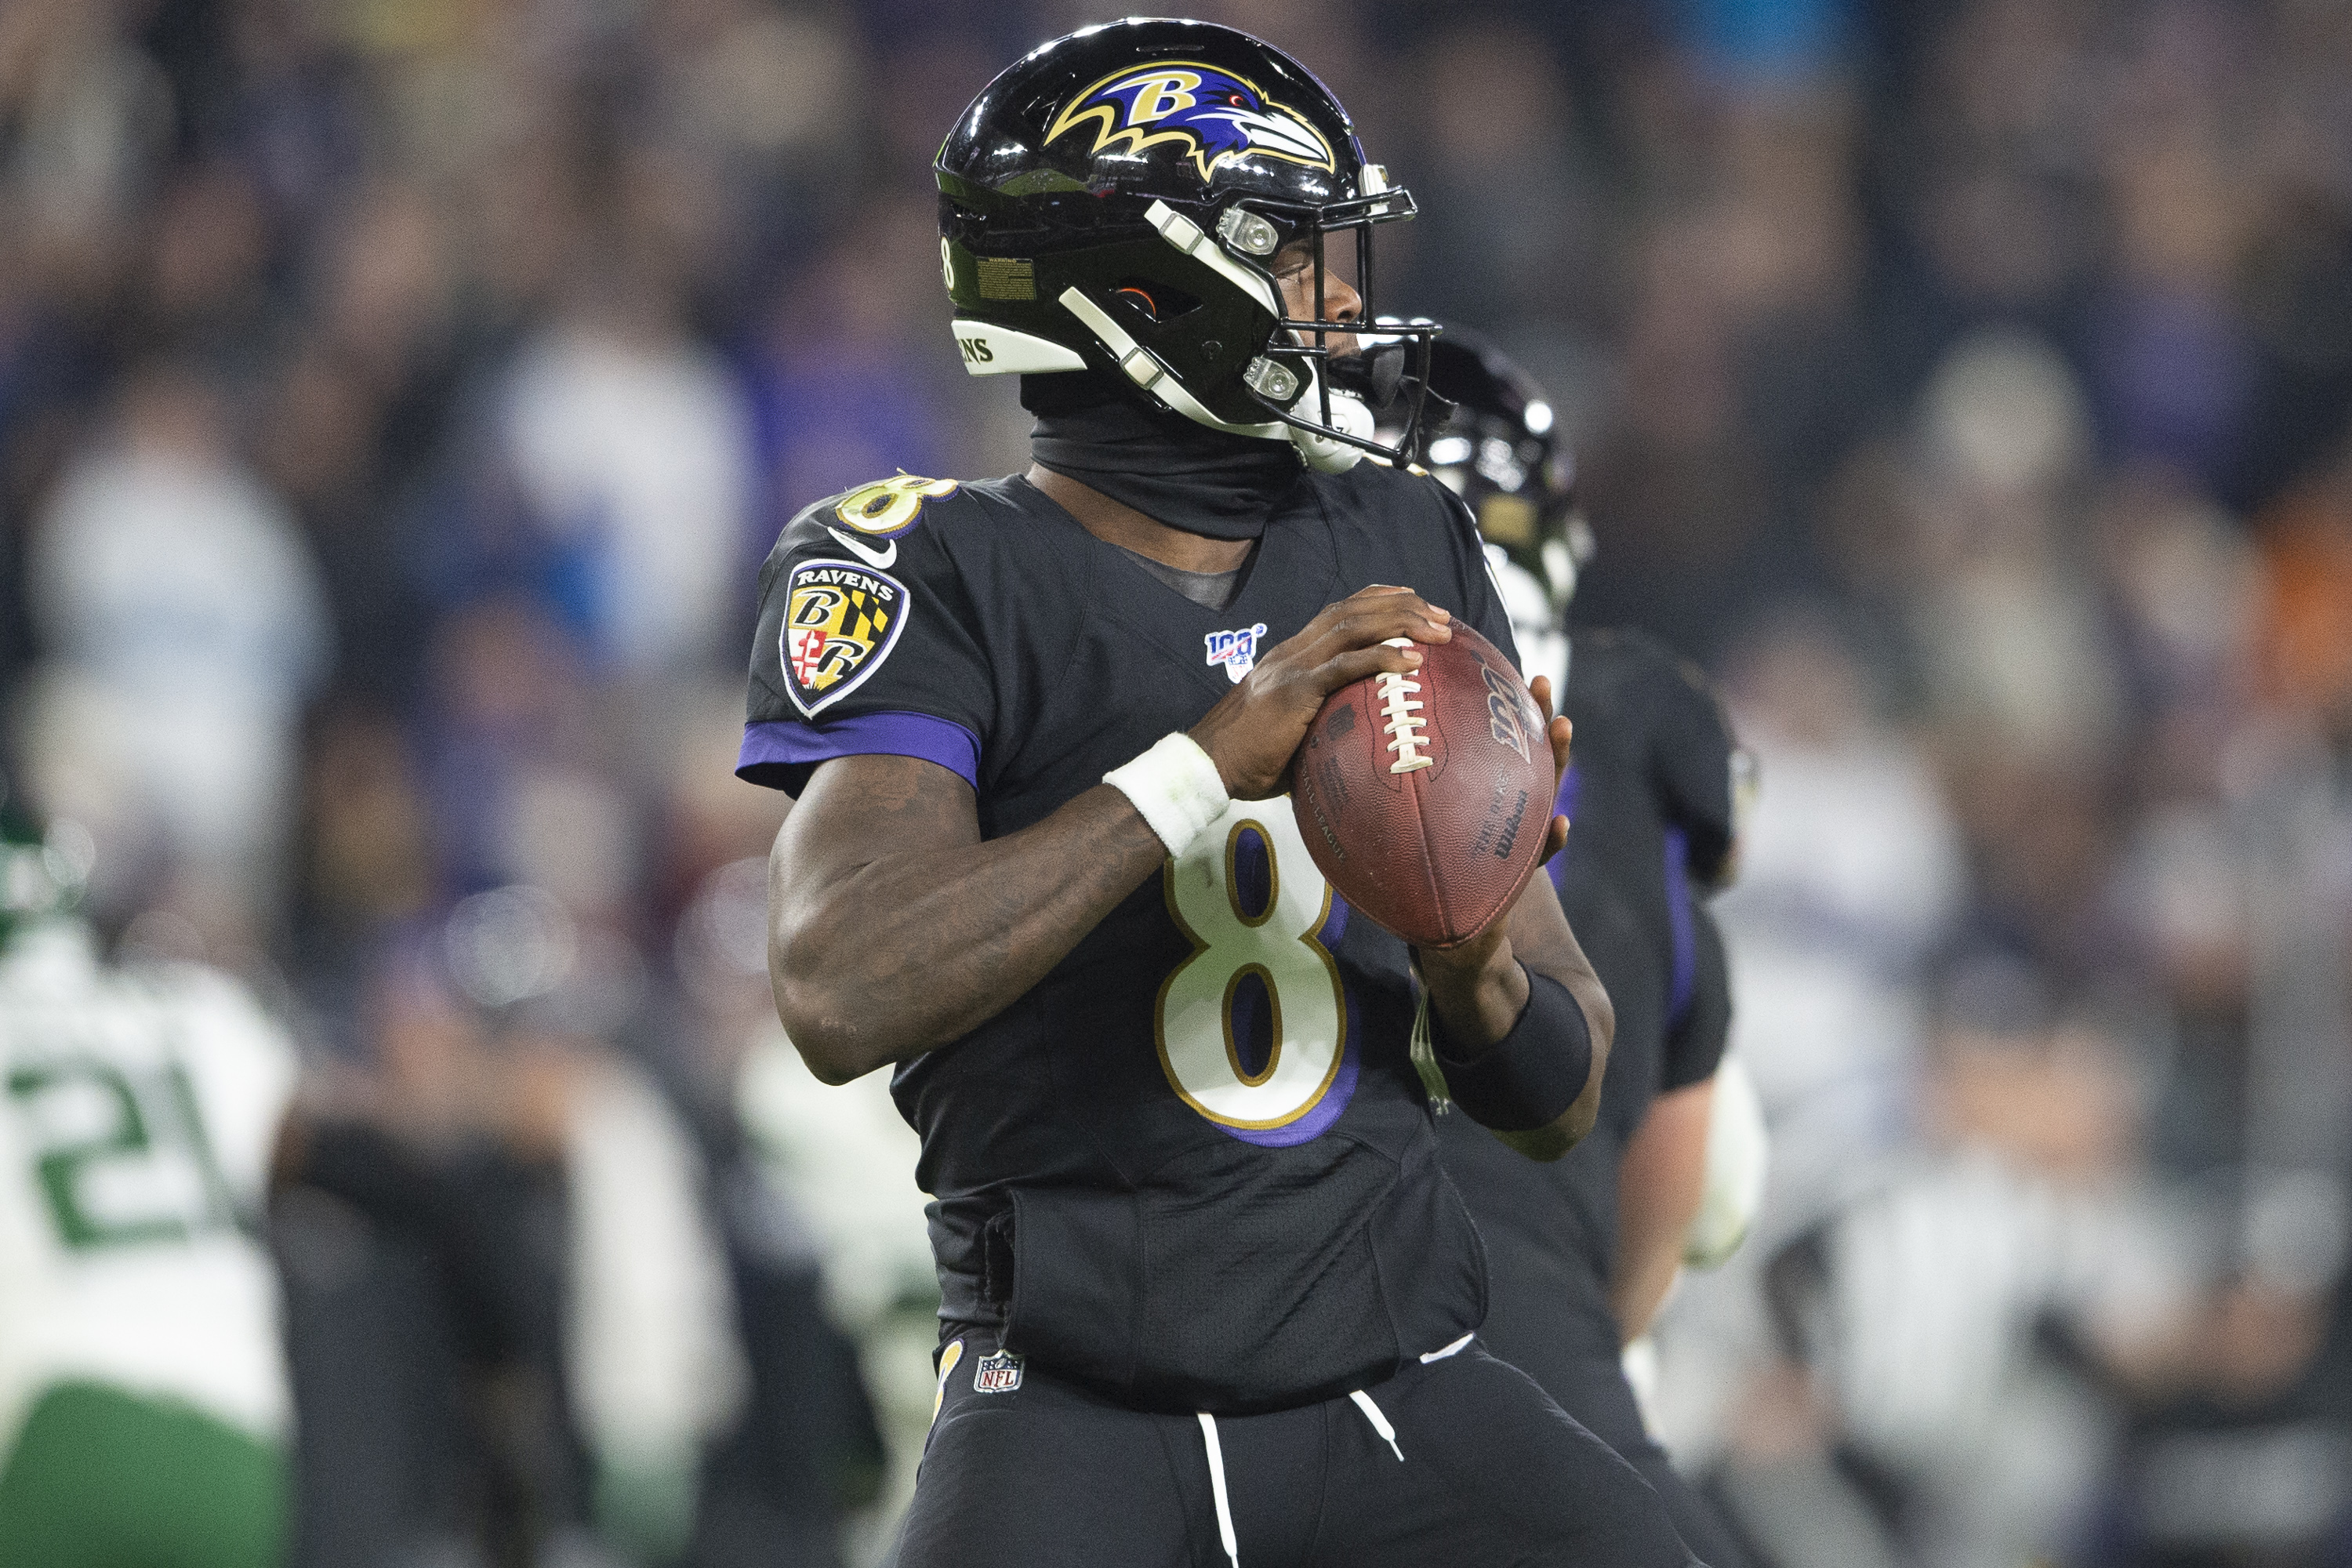 Lamar Jackson Already Focused on Getting Better, Making Another Playoff Run